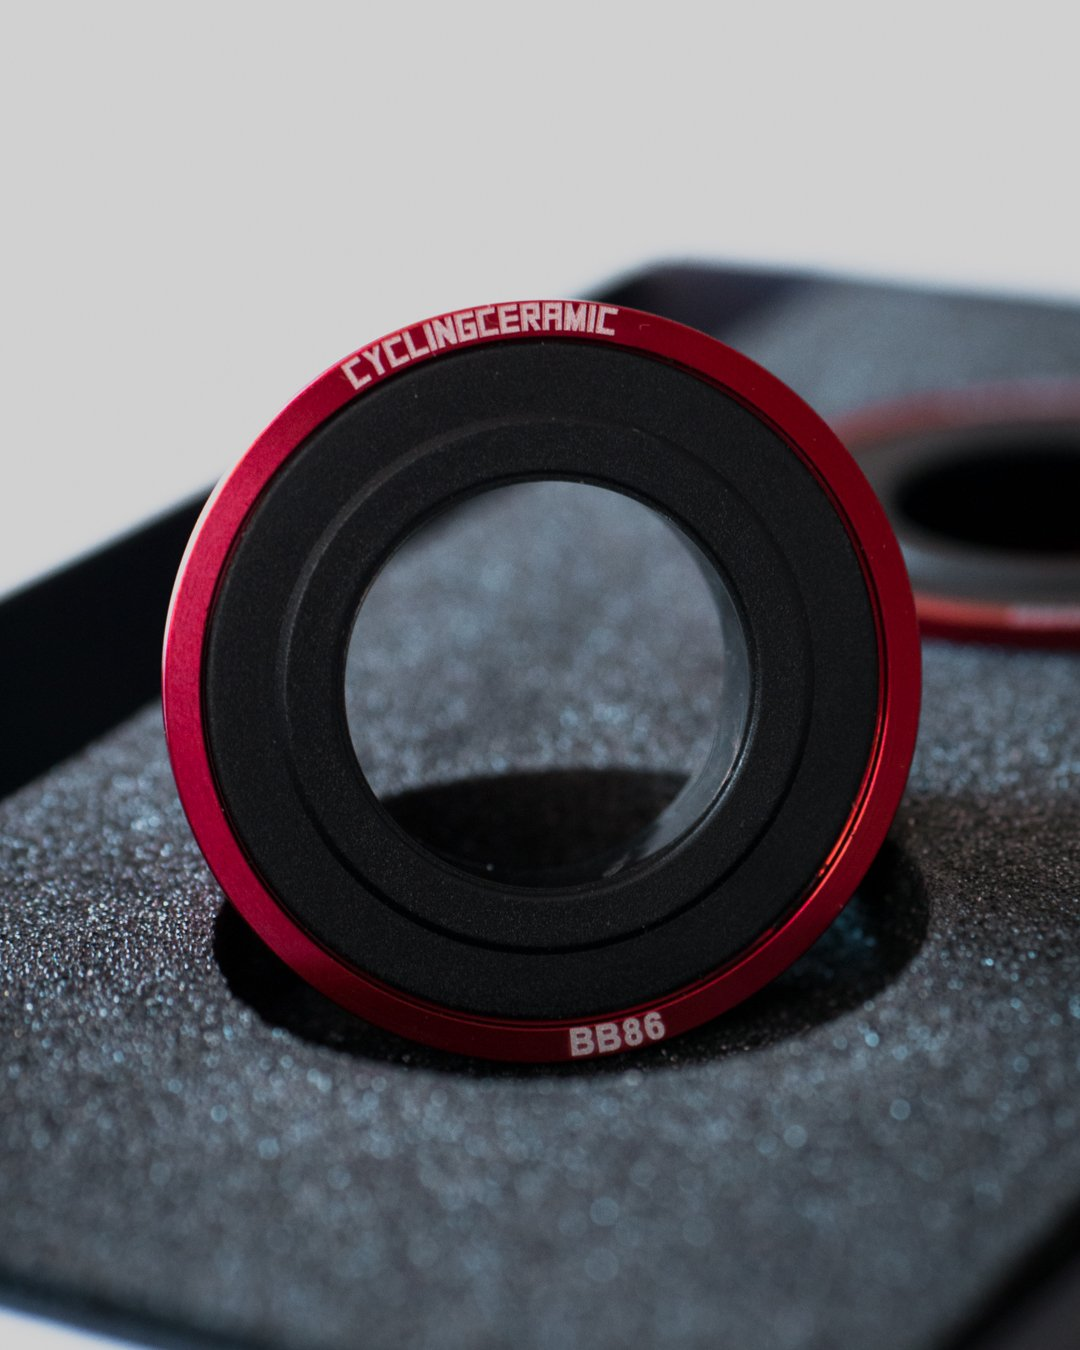 BB86 bottom bracket from Cycling Ceramic in red anodized